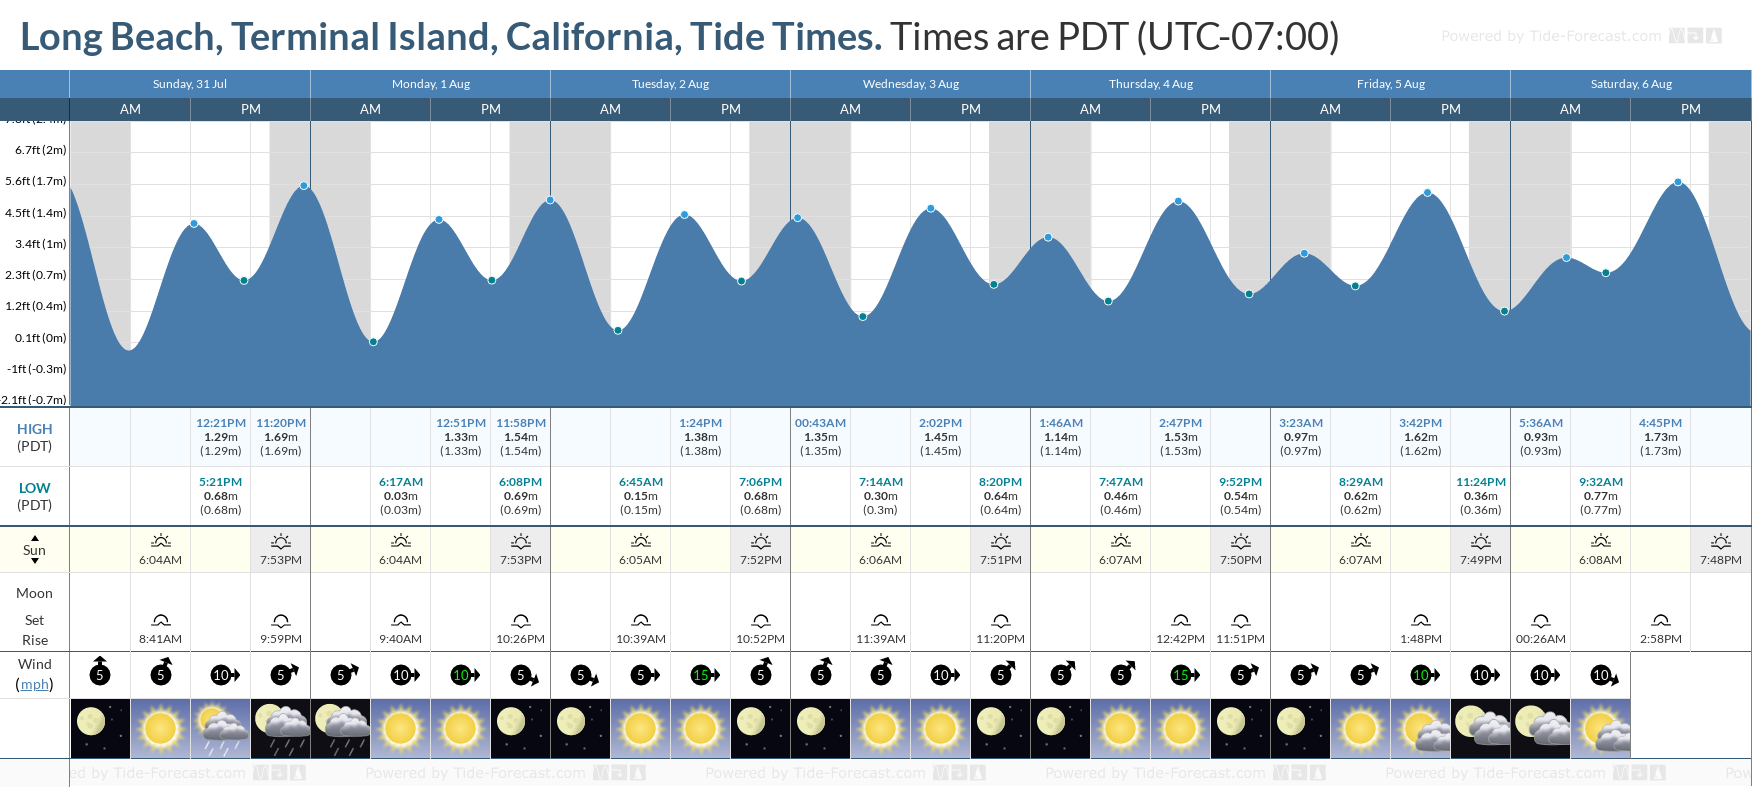 Long Beach, Terminal Island, California Tide Chart including high and low tide tide times for the next 7 days